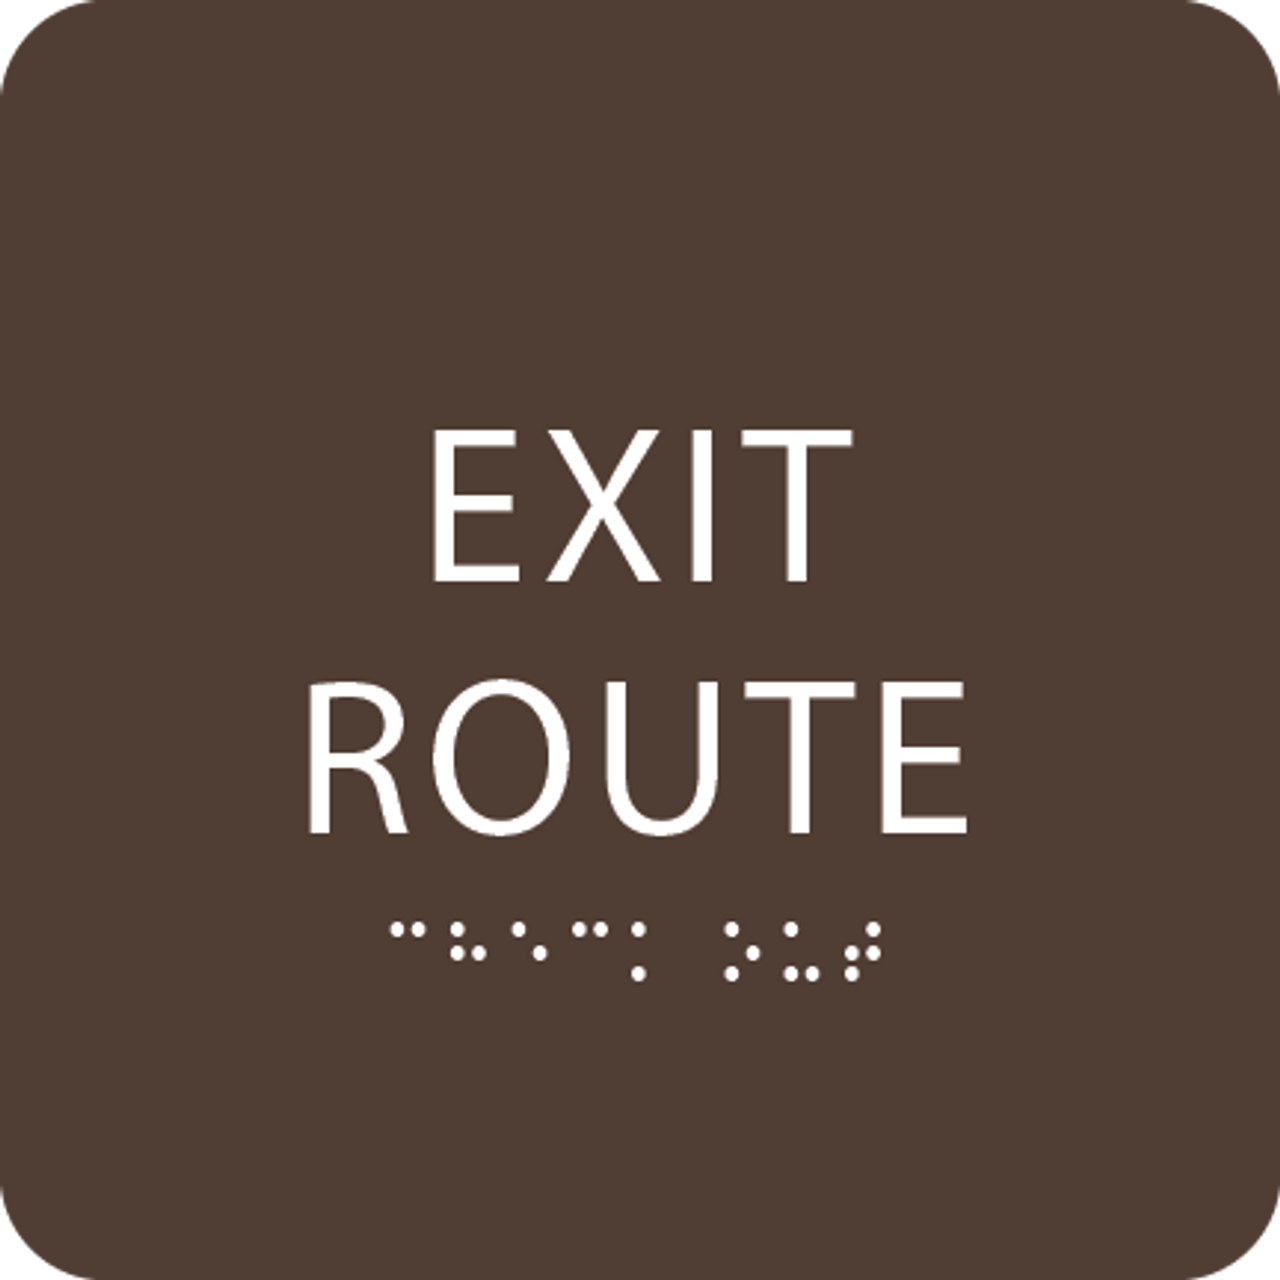 Brown Tactile Exit Route Sign